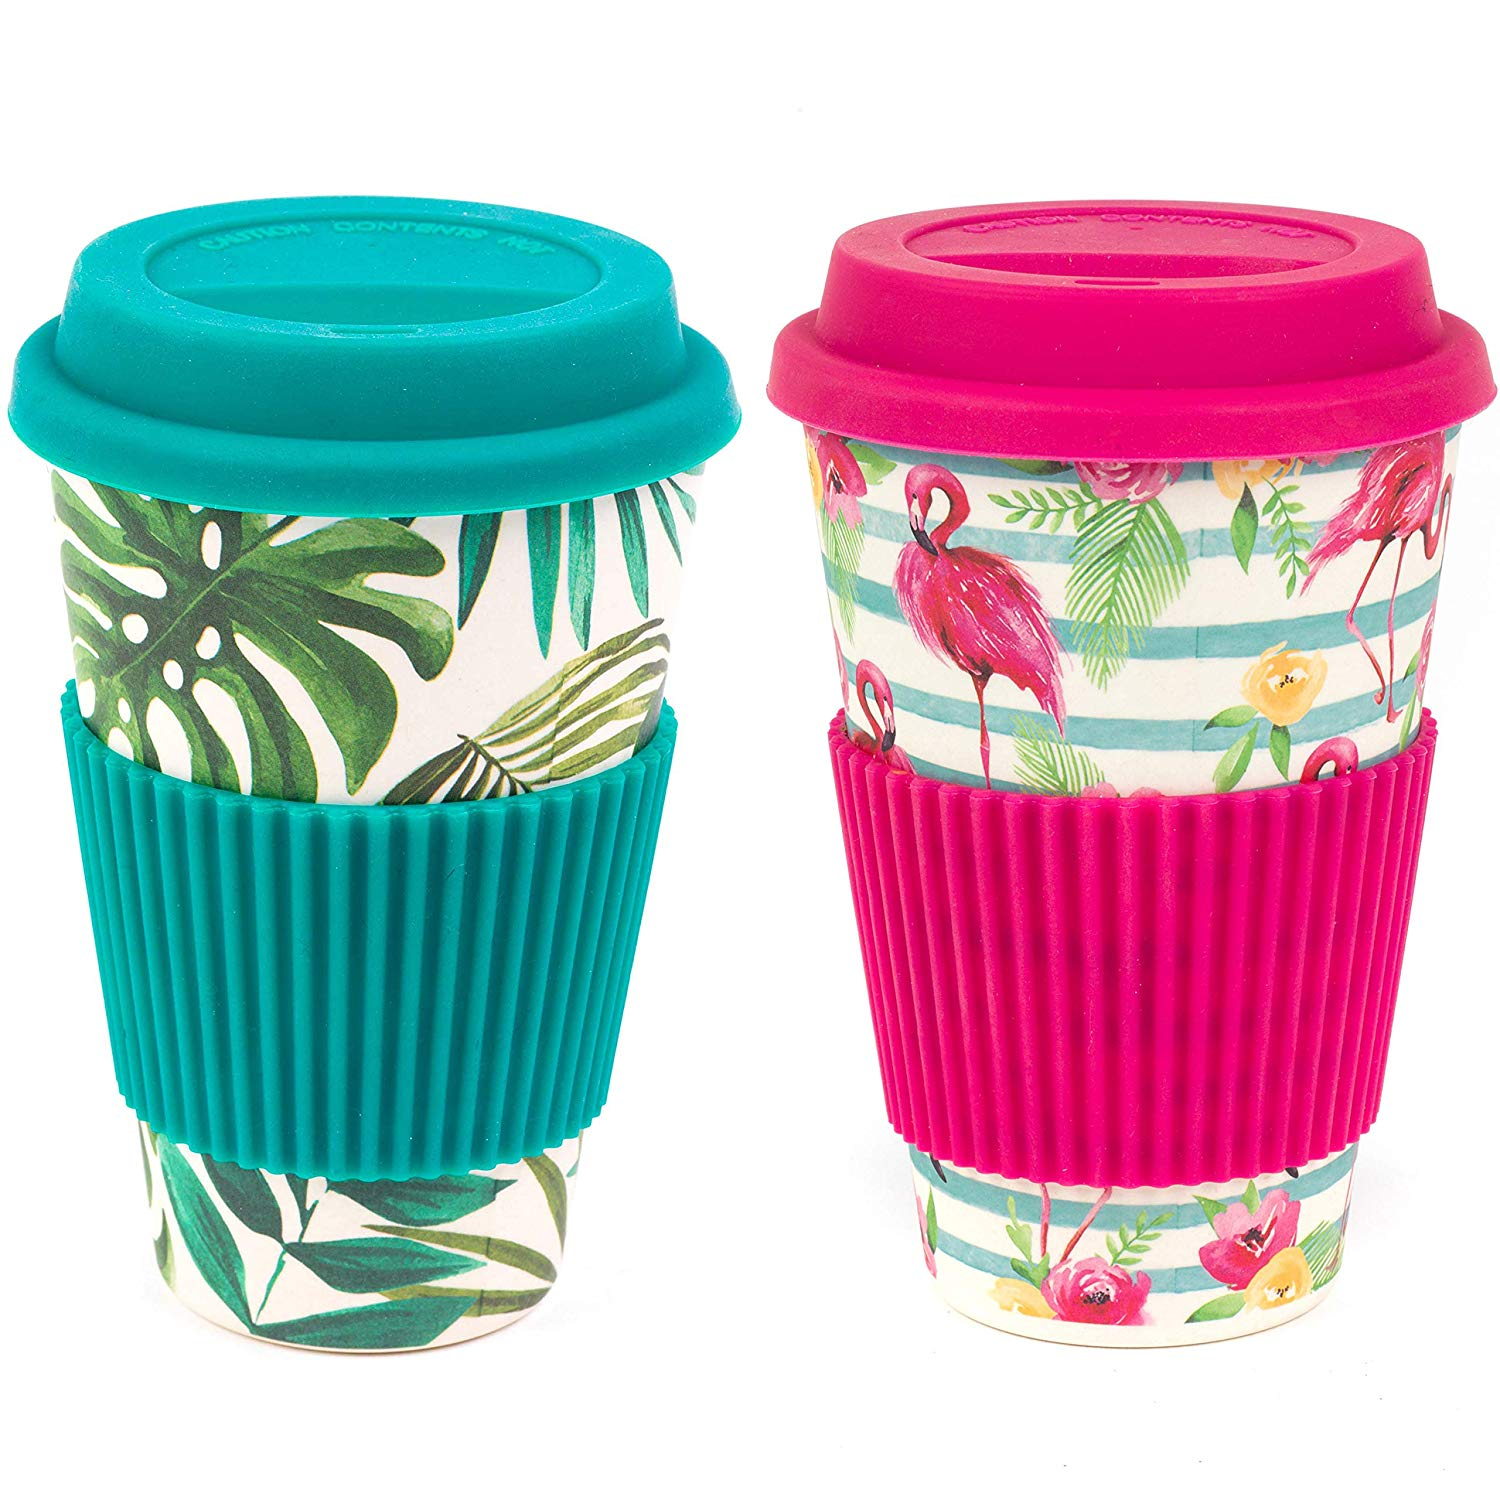 In The Can Love Spotted Coffee Here's Get Where You Island Cups n0Pw8OkX